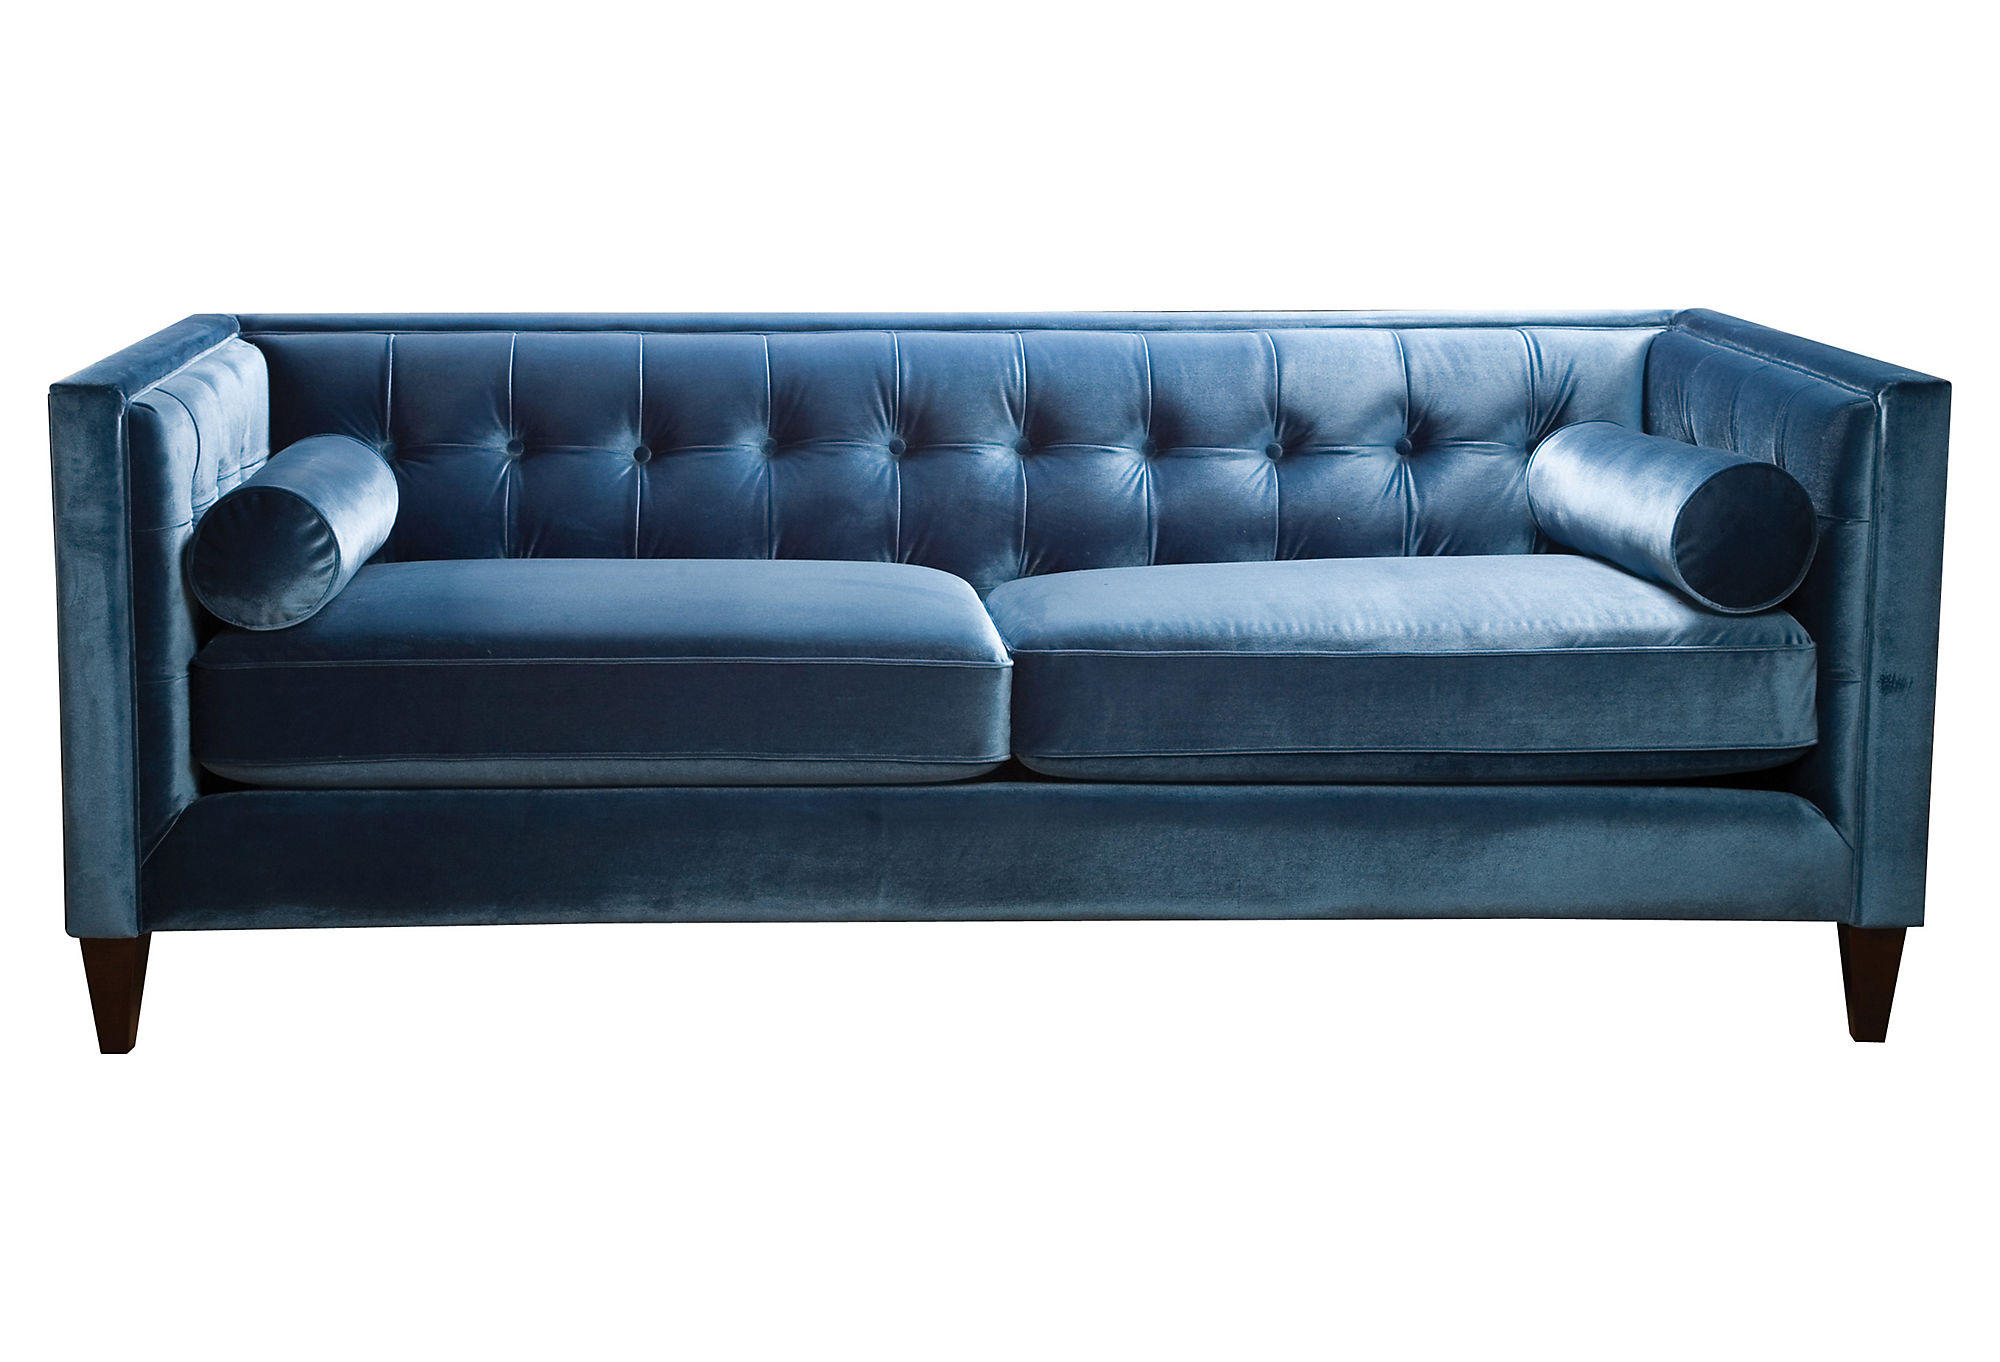 "Jodi 84"" Tufted Velvet Sofa, Teal, Sofas from One Kings Lane"